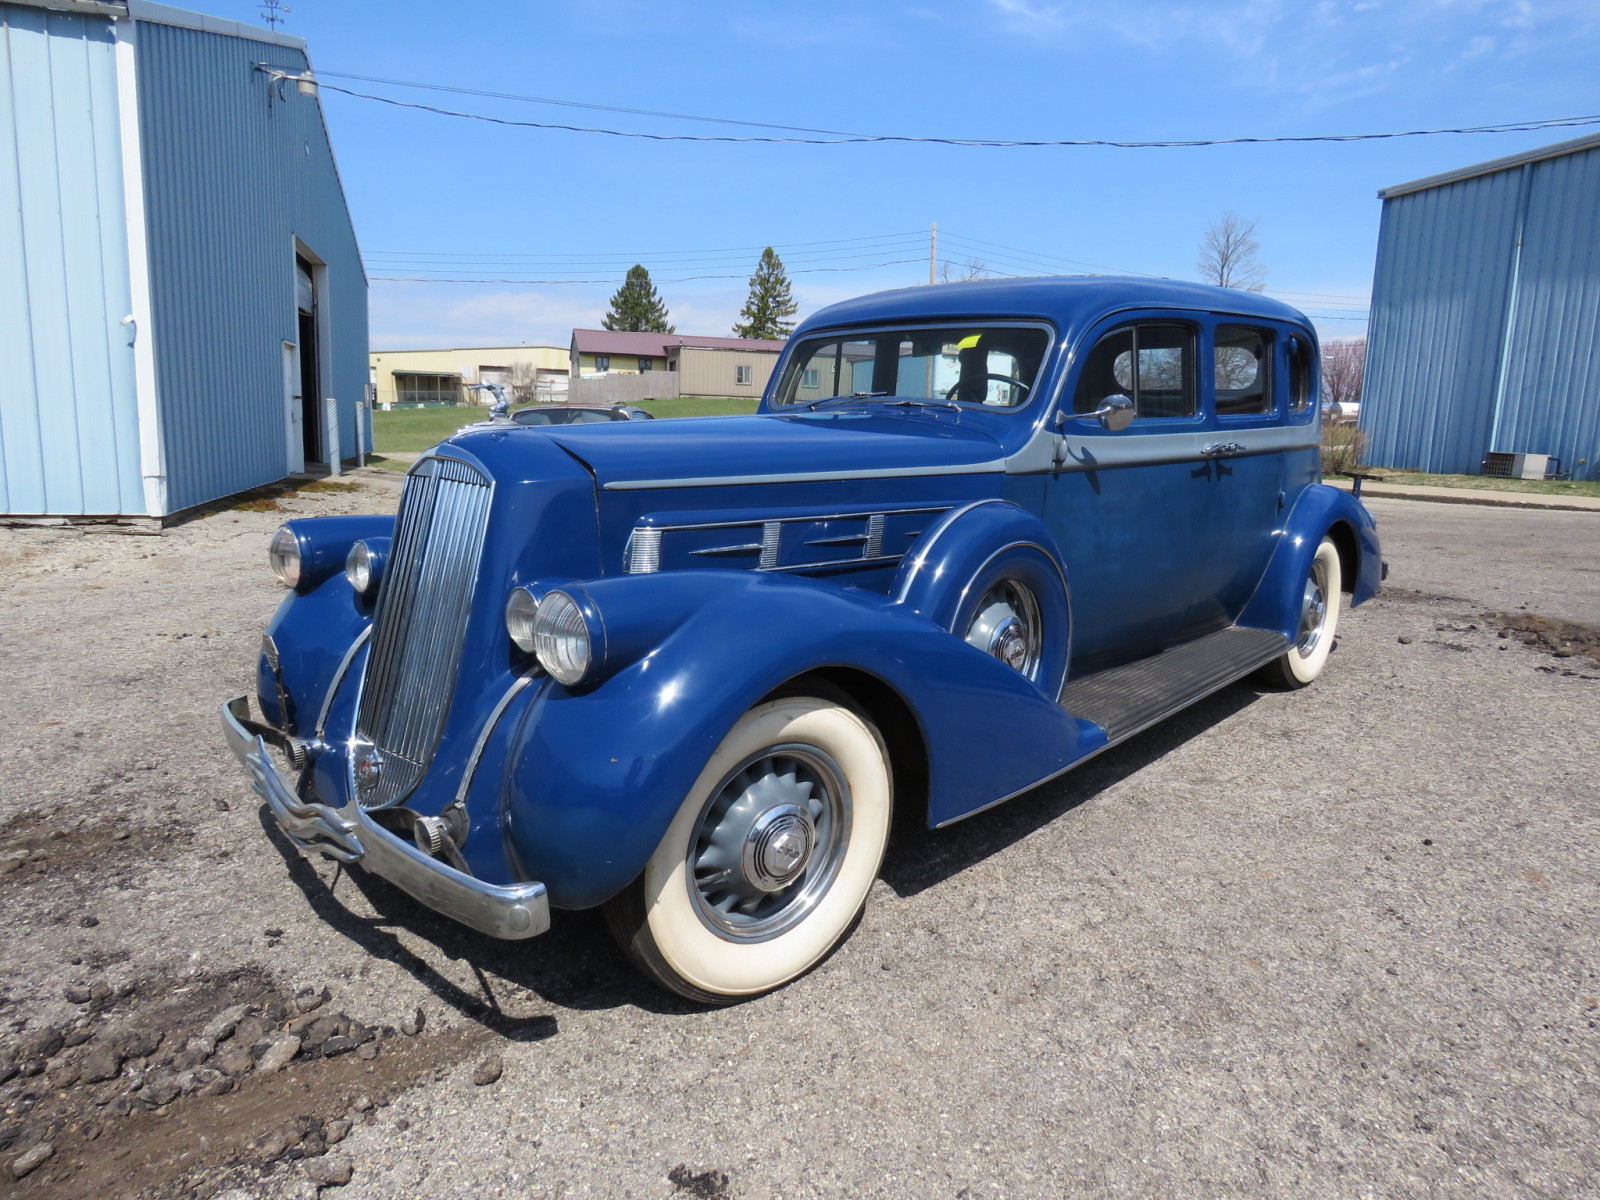 1936 Pierce Arrow V12  Series 1602 5 Passenger Sedan - Image 13